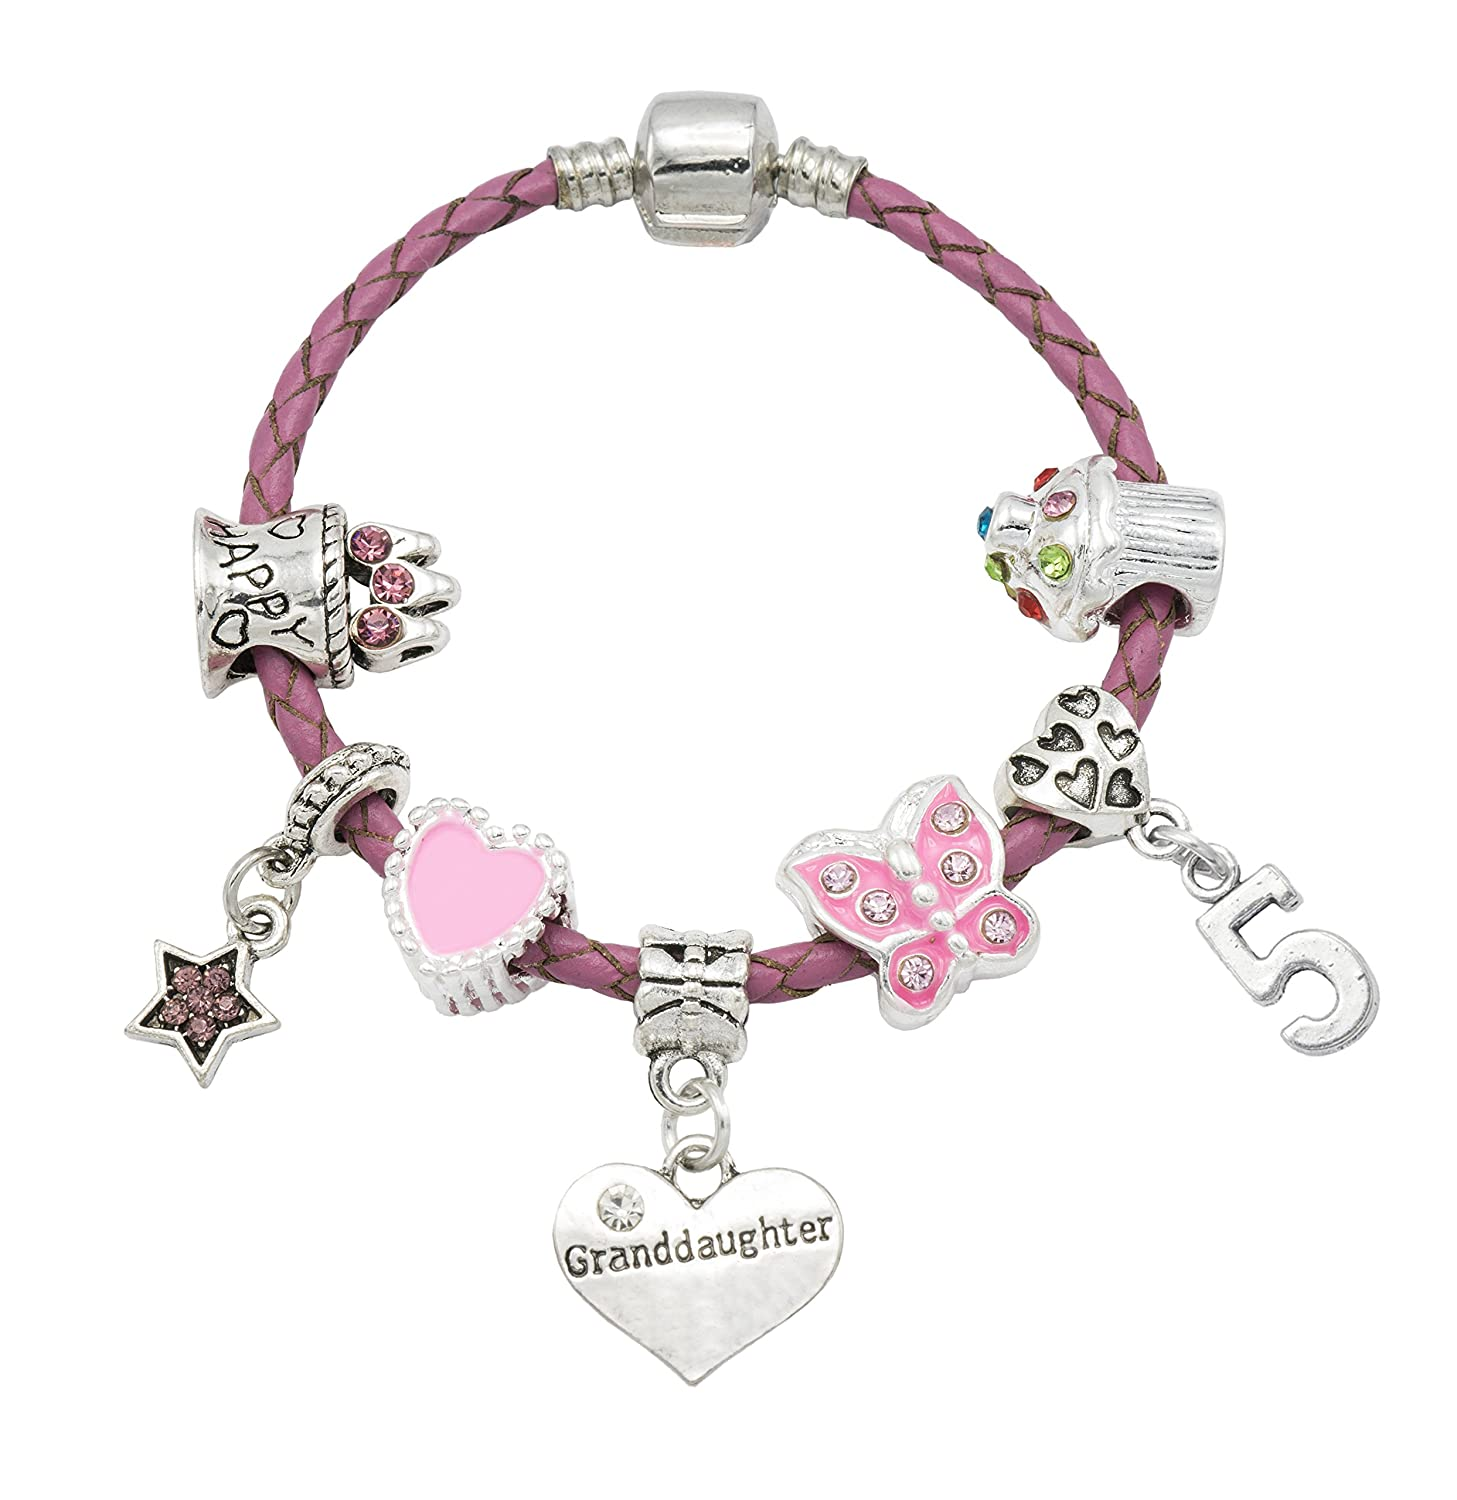 'Granddaughter' - Happy 5th Birthday Bracelet For Girls with Gift Box - Girls Jewellery Jewellery Hut BRGRANDDAUGHT5-16